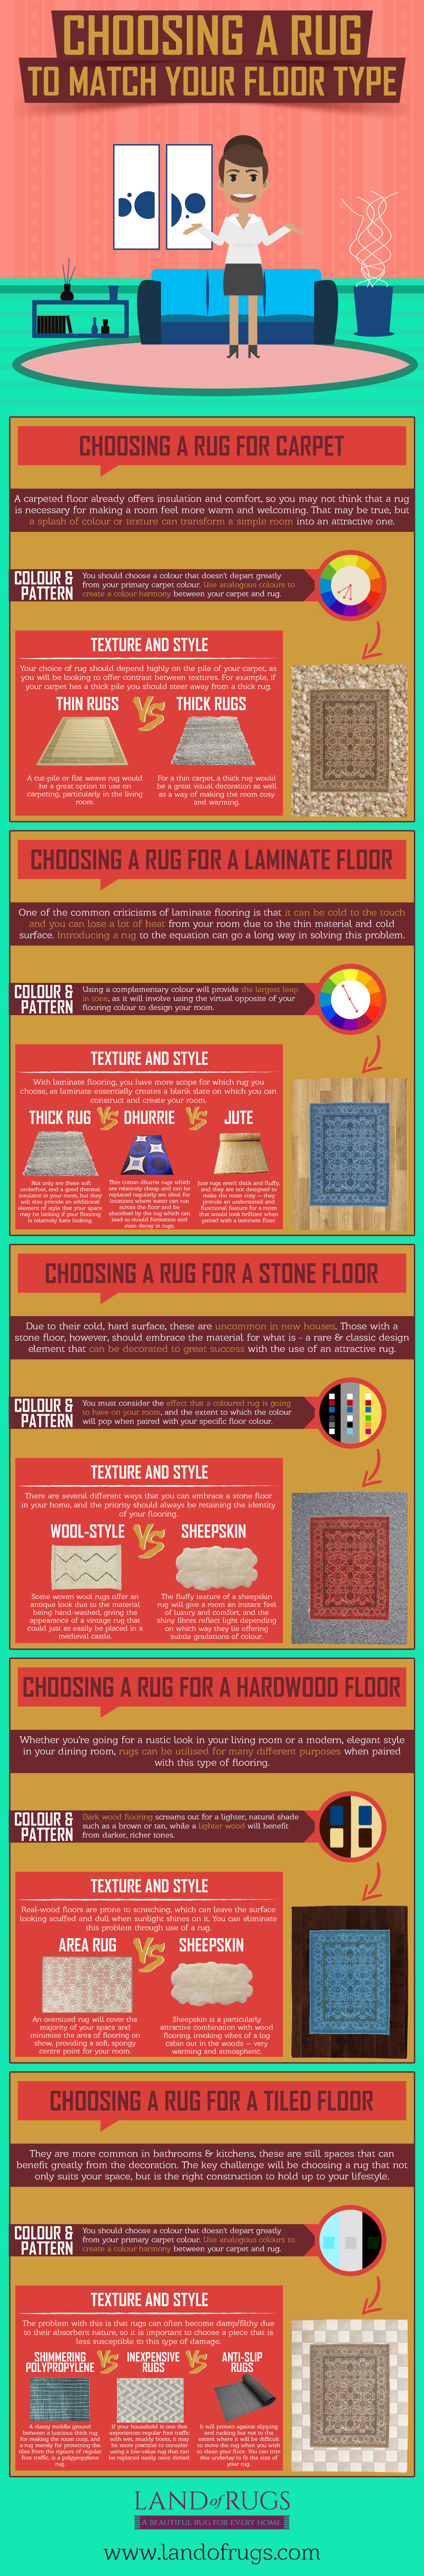 CHOOSING A RUG TO MATCH YOUR FLOOR TYPE.jpg